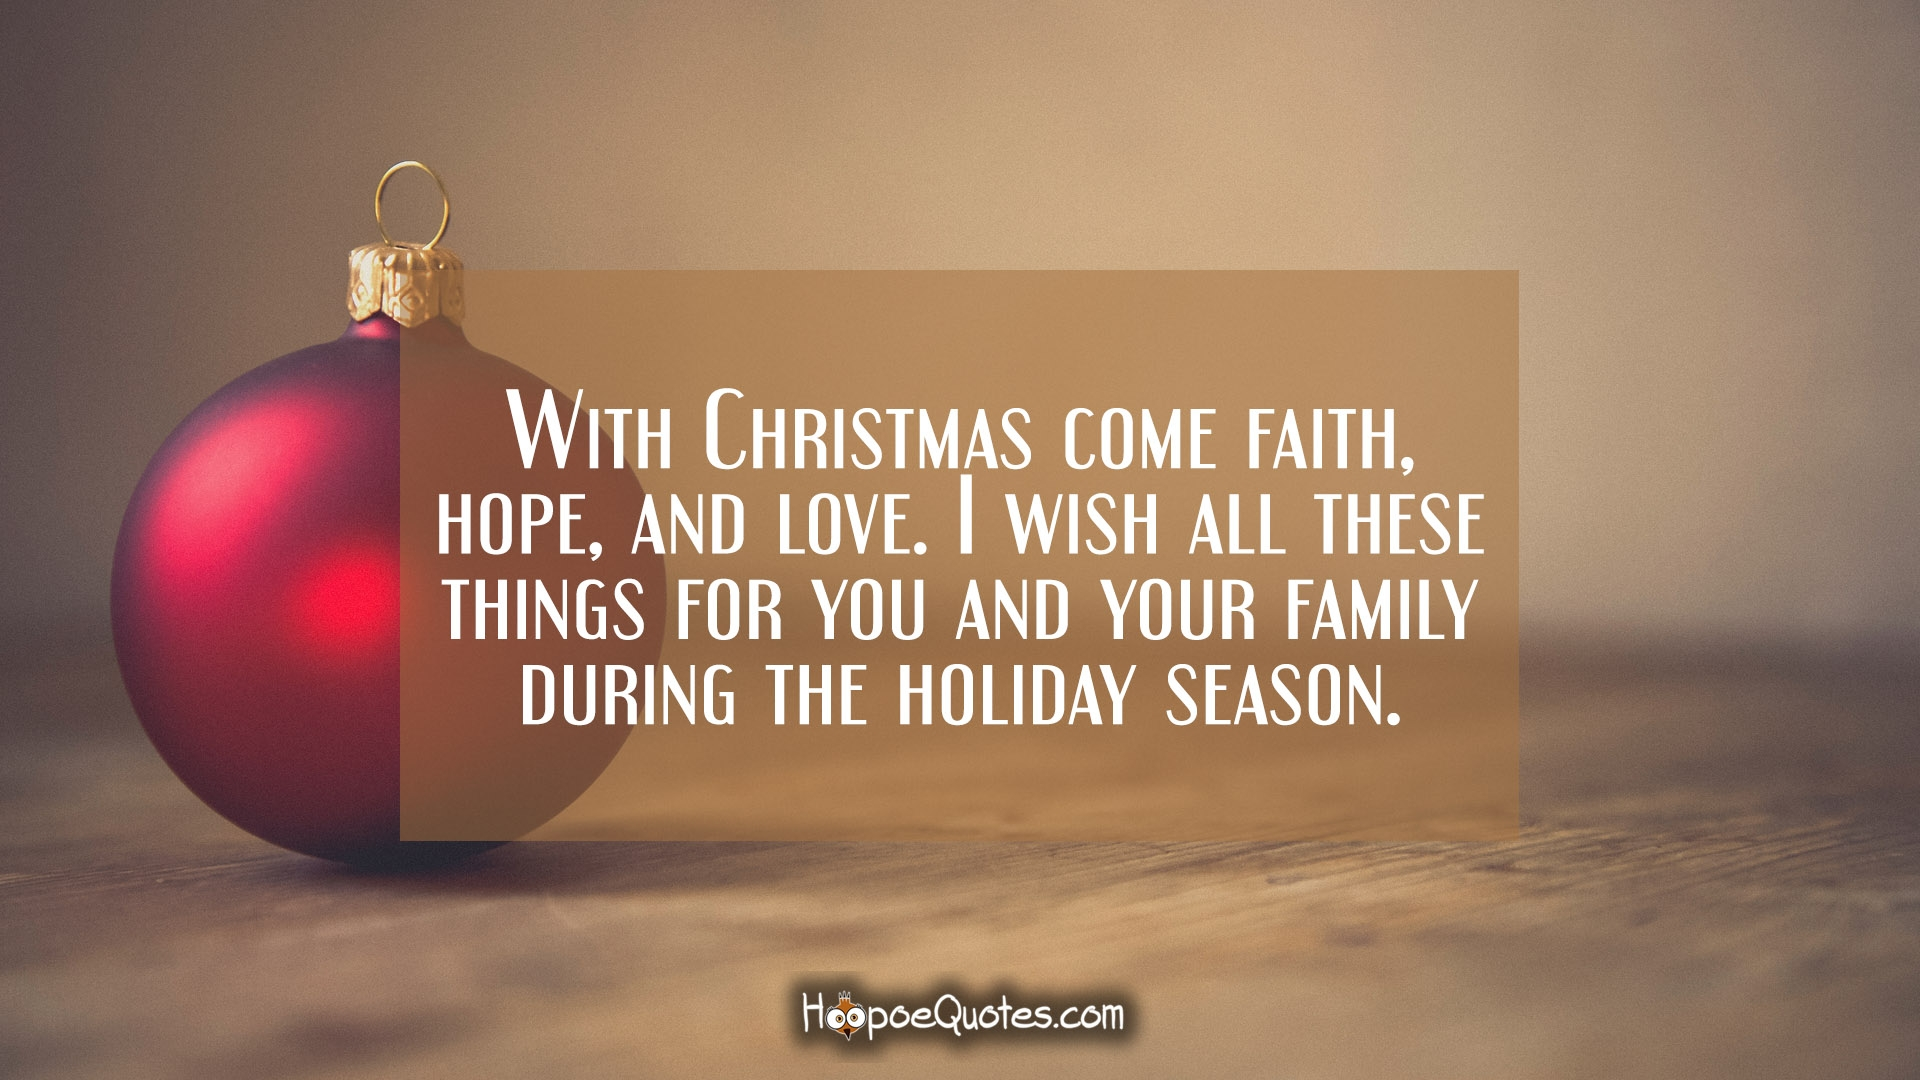 Love Faith Hope Quotes With Christmas Come Faith Hope And Lovei Wish All These Things